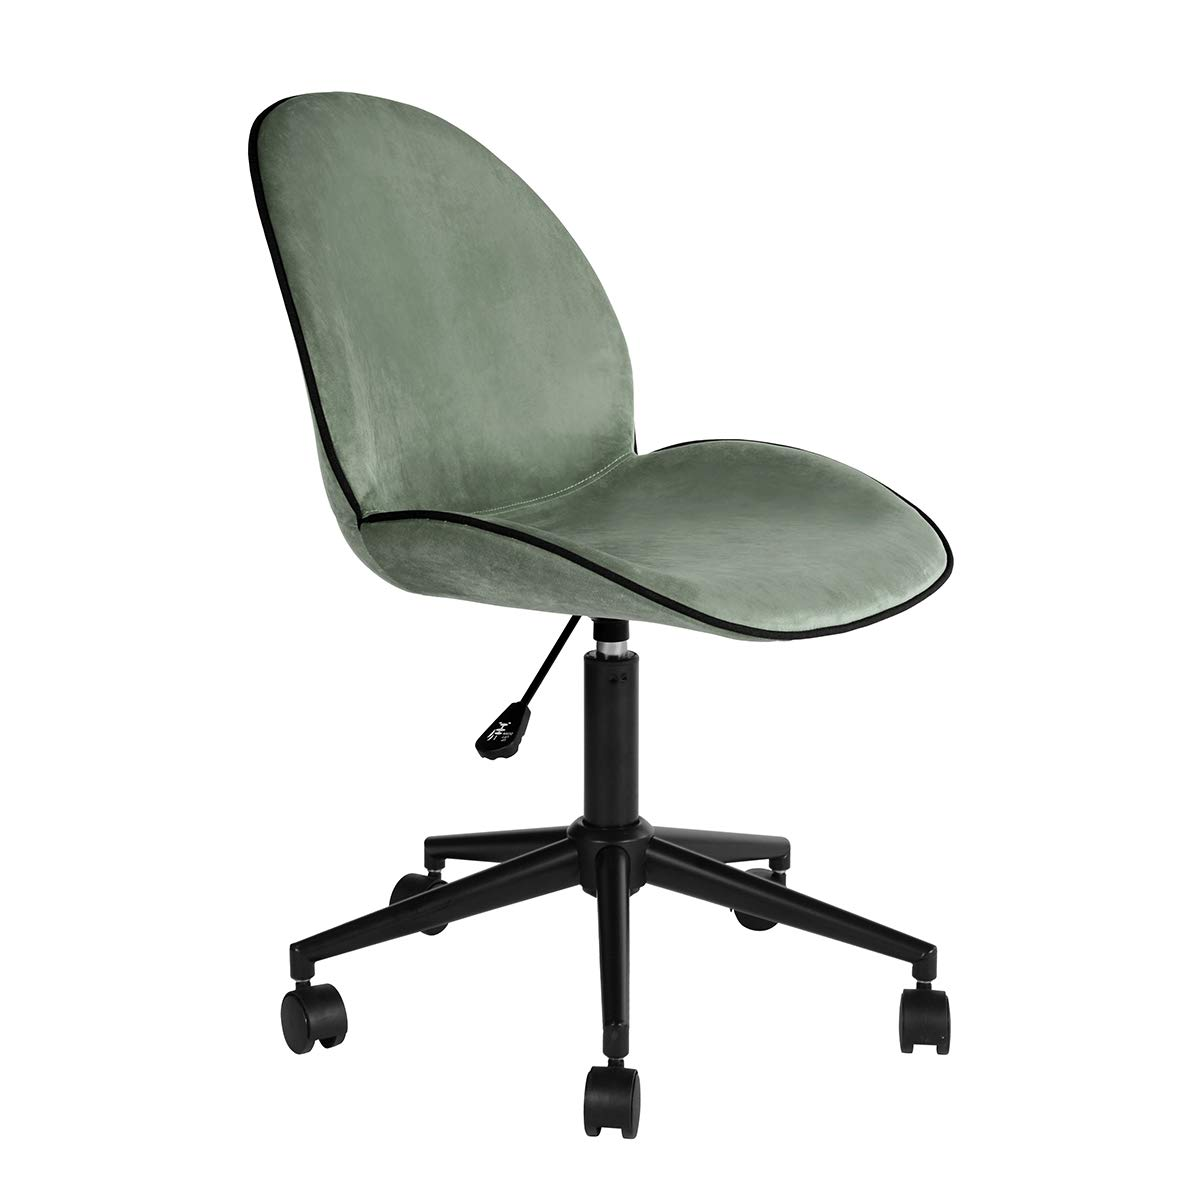 Office Chair HOMY CASA Velvet Fabric Desk Chairs Adjustable Back Support Computer Chair Wheels Conference Room, Home, Office, Workstation (Cactus)